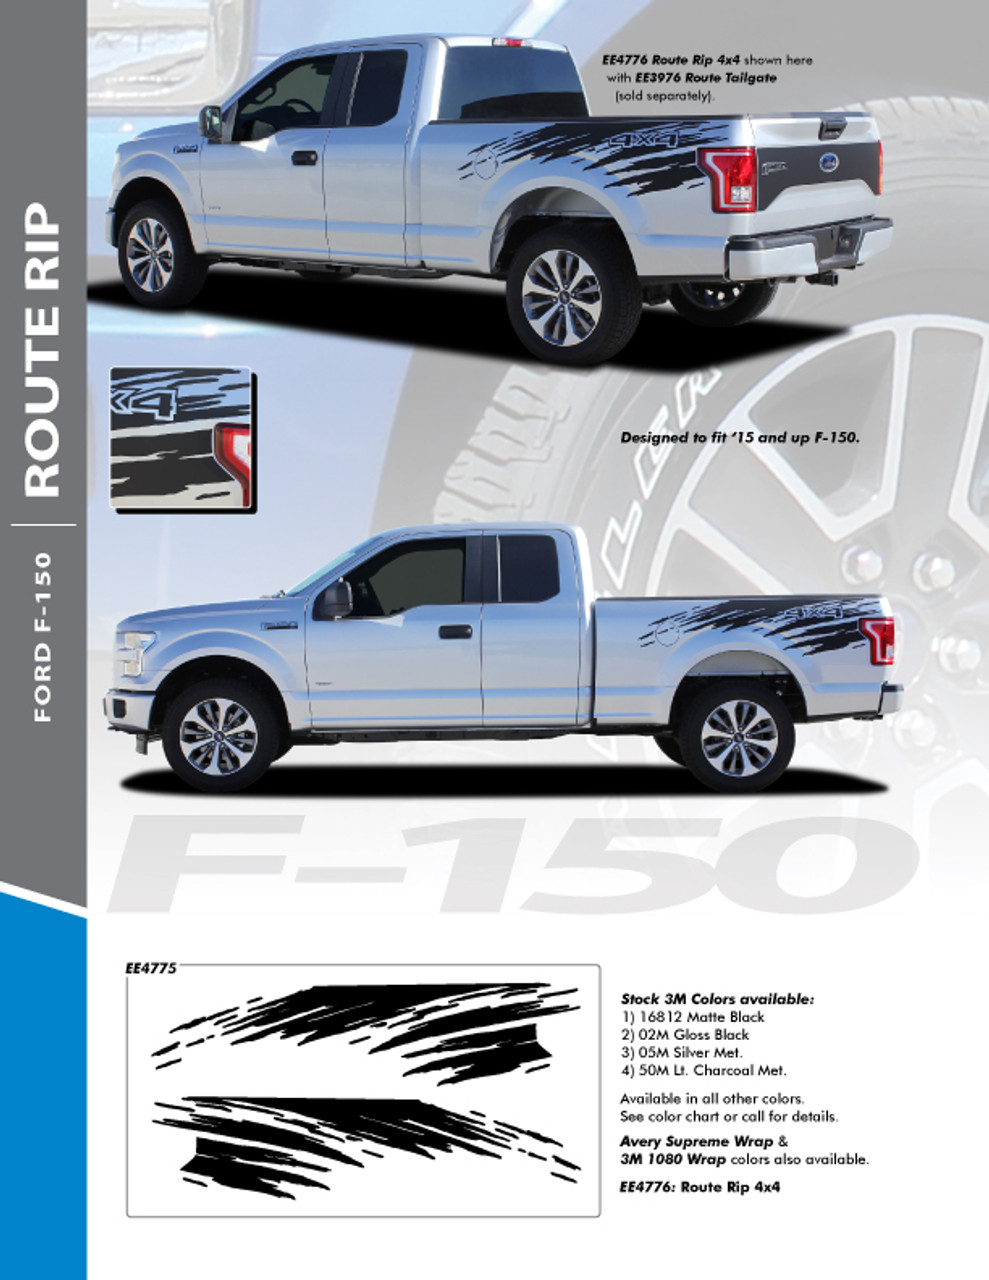 F-150 Simple design for any pickup truck SET OF 2 Chevy 4x4 Truck Bed Decals